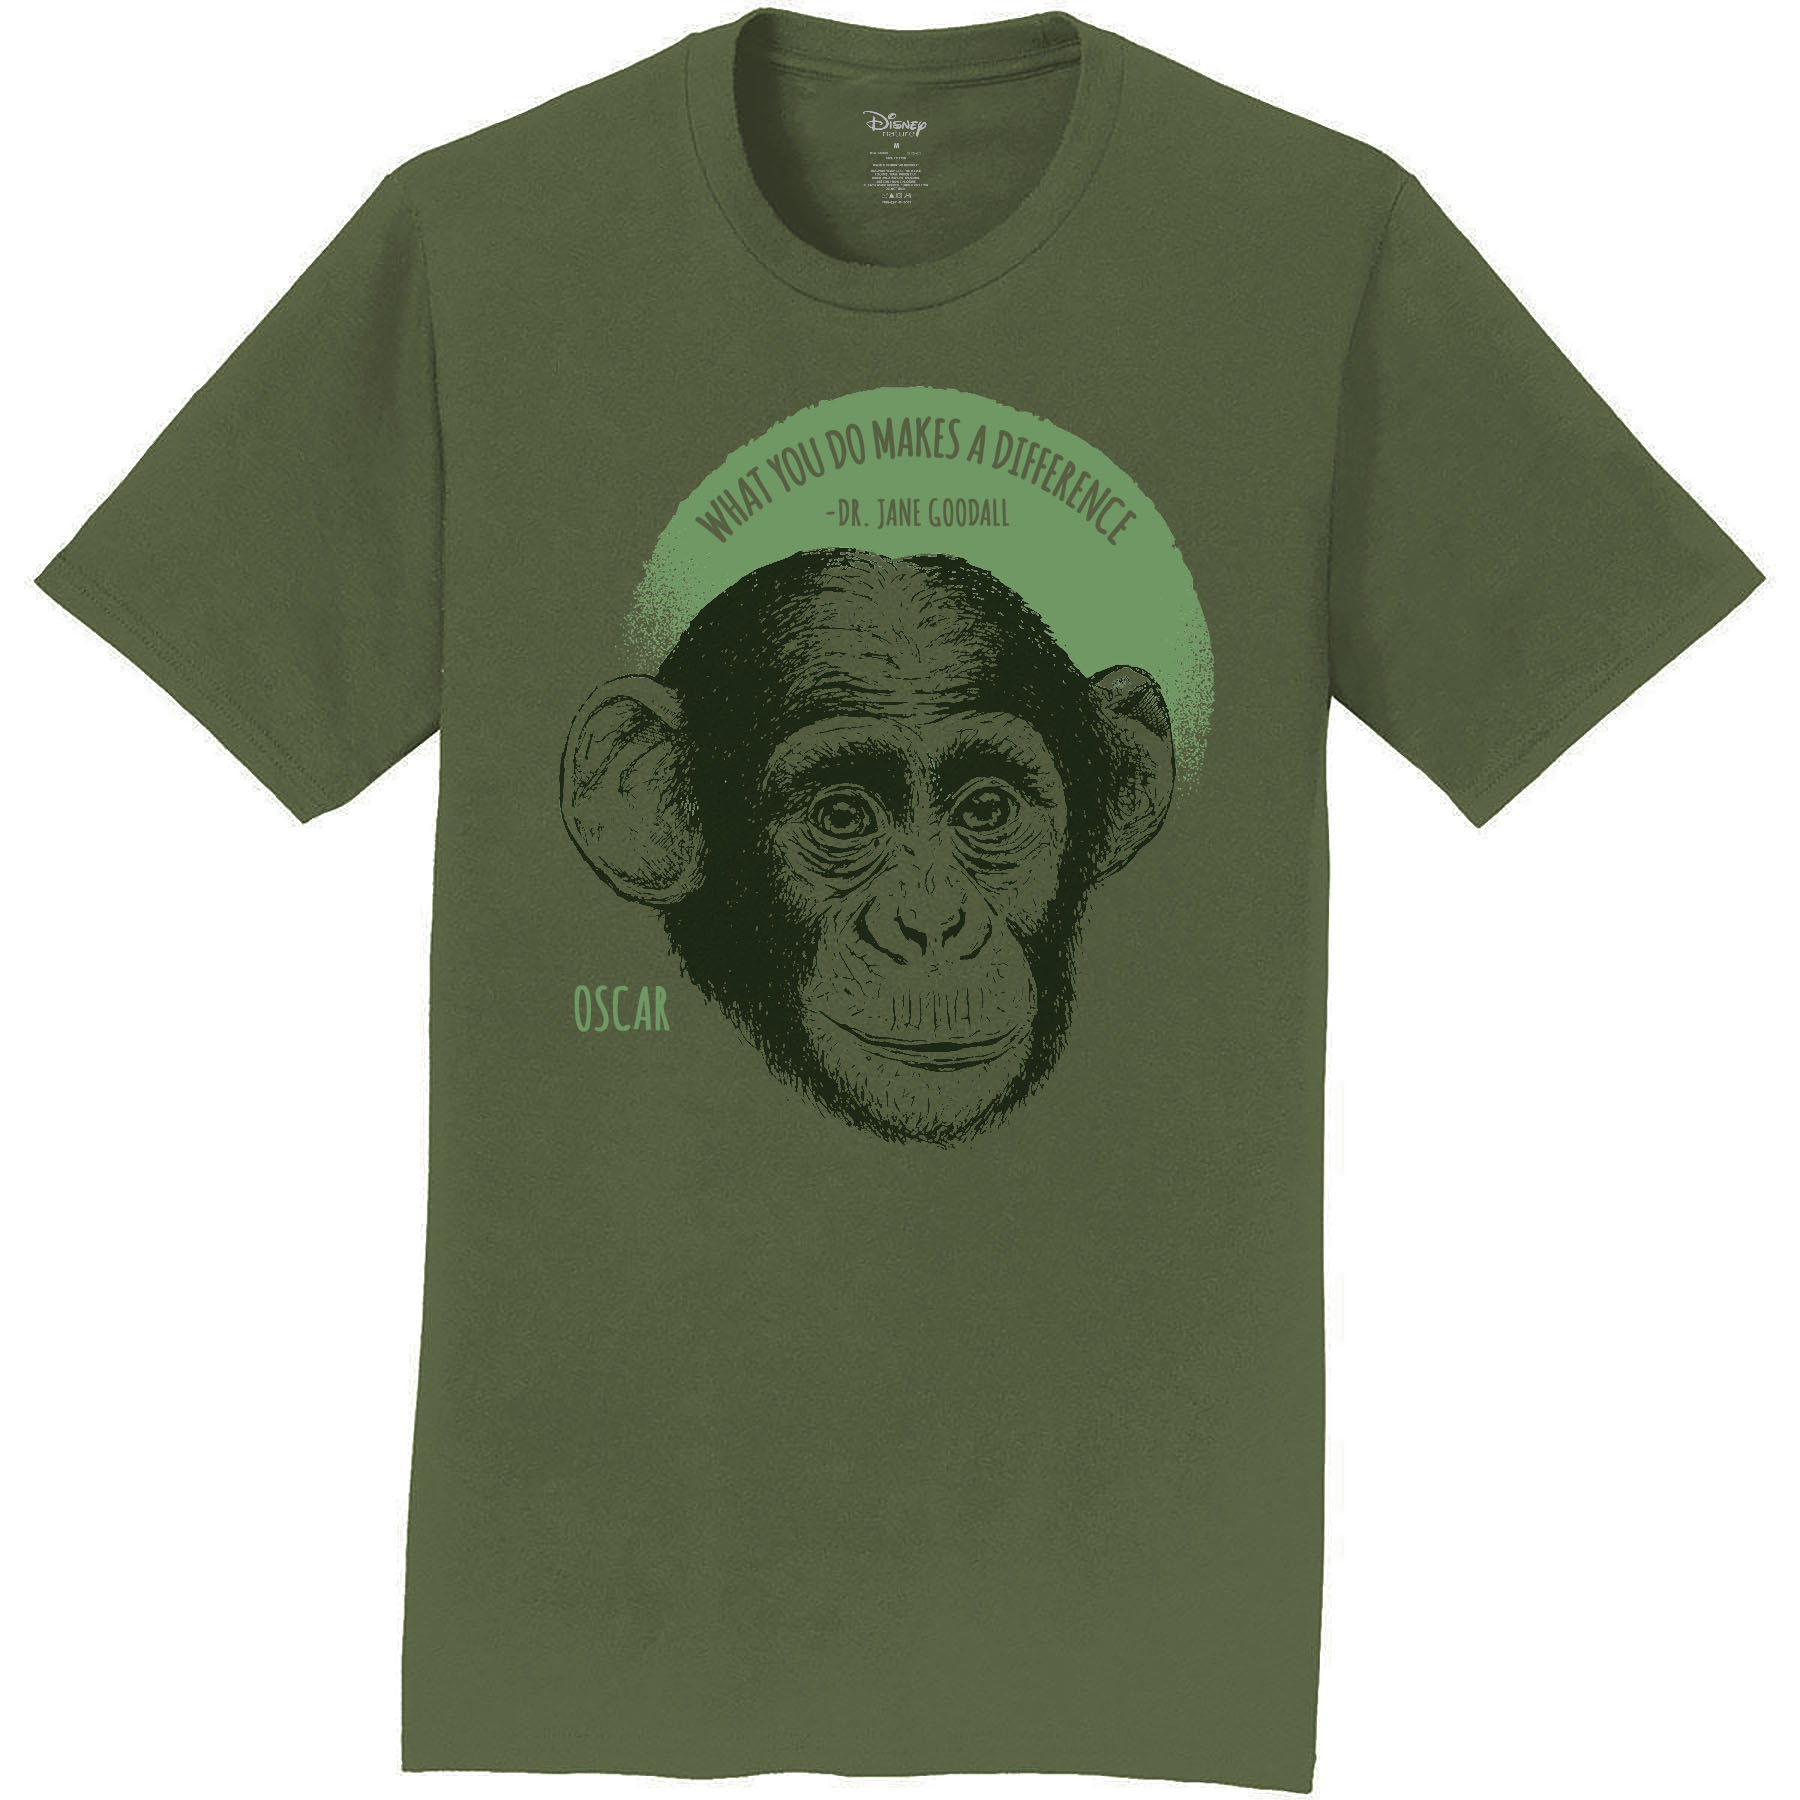 Disneynature + JGI Oscar Quote T-Shirt